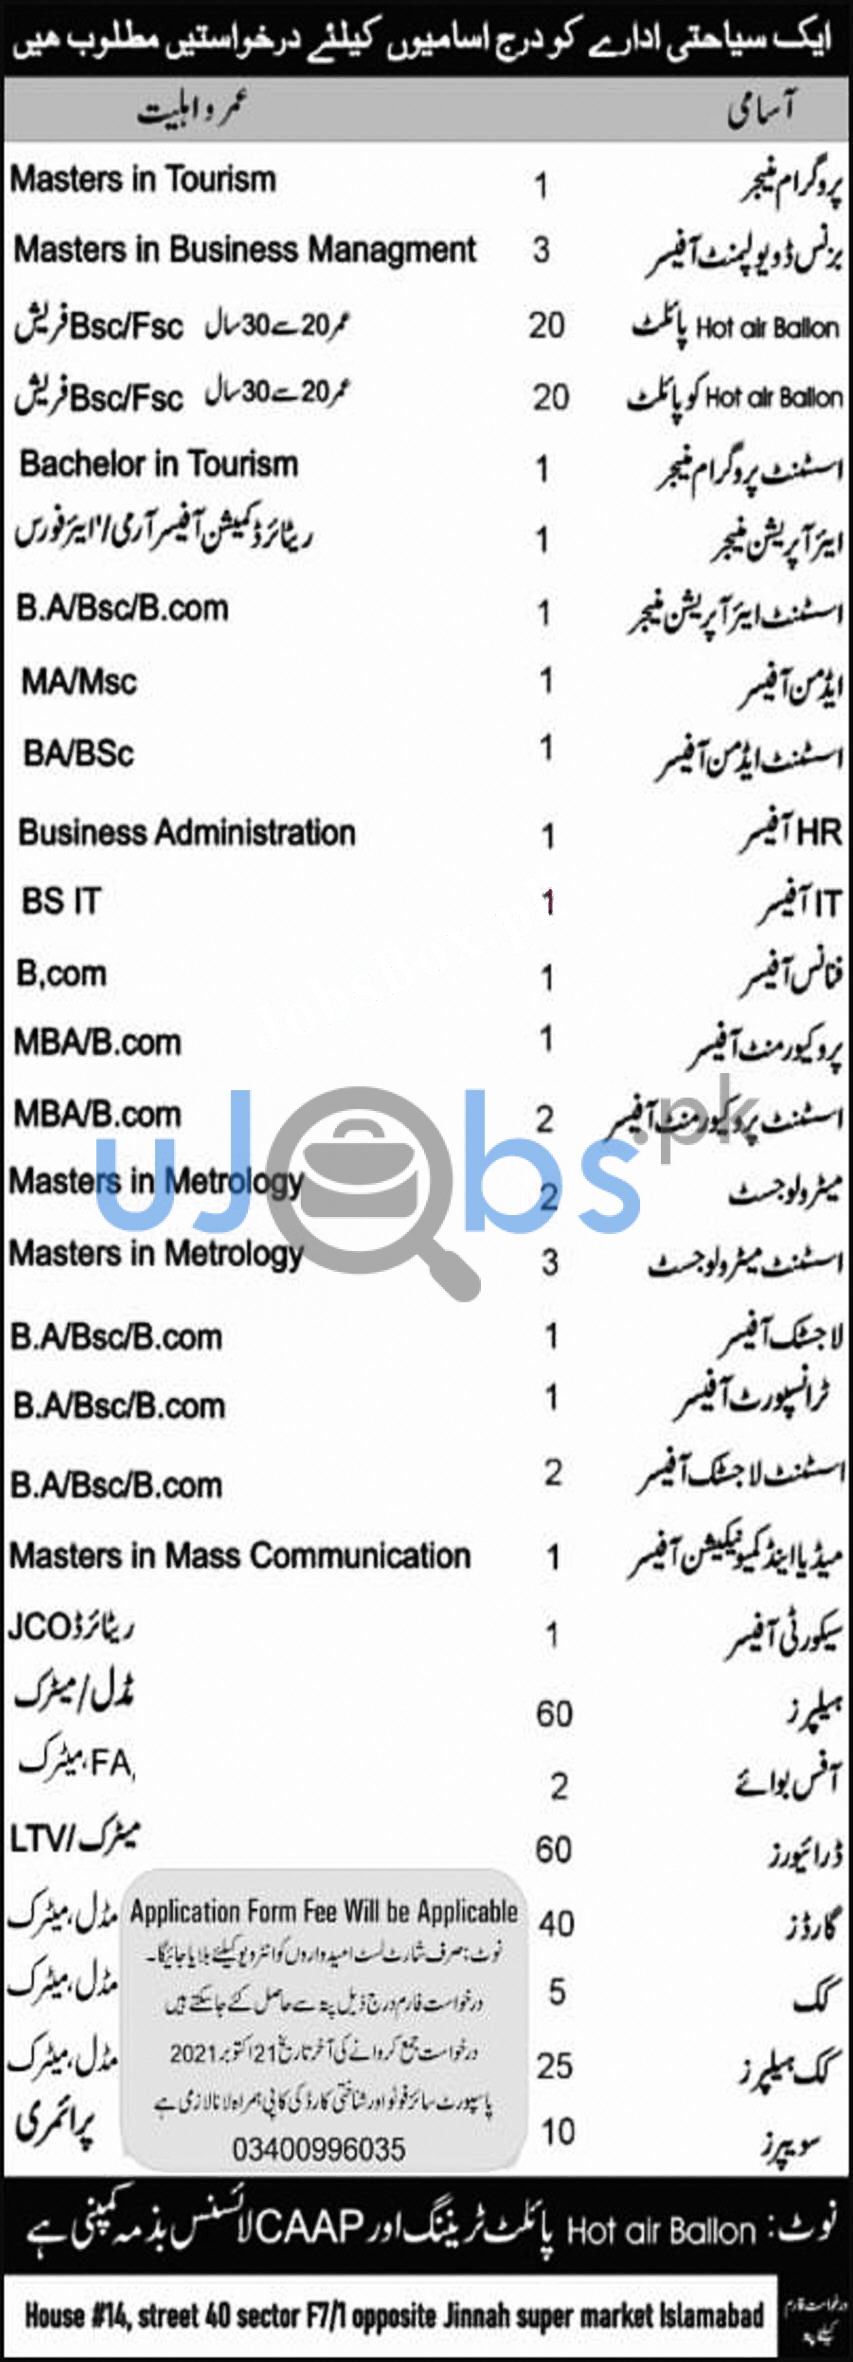 Latest Travel agency jobs in Islamabad 2021 advertisement